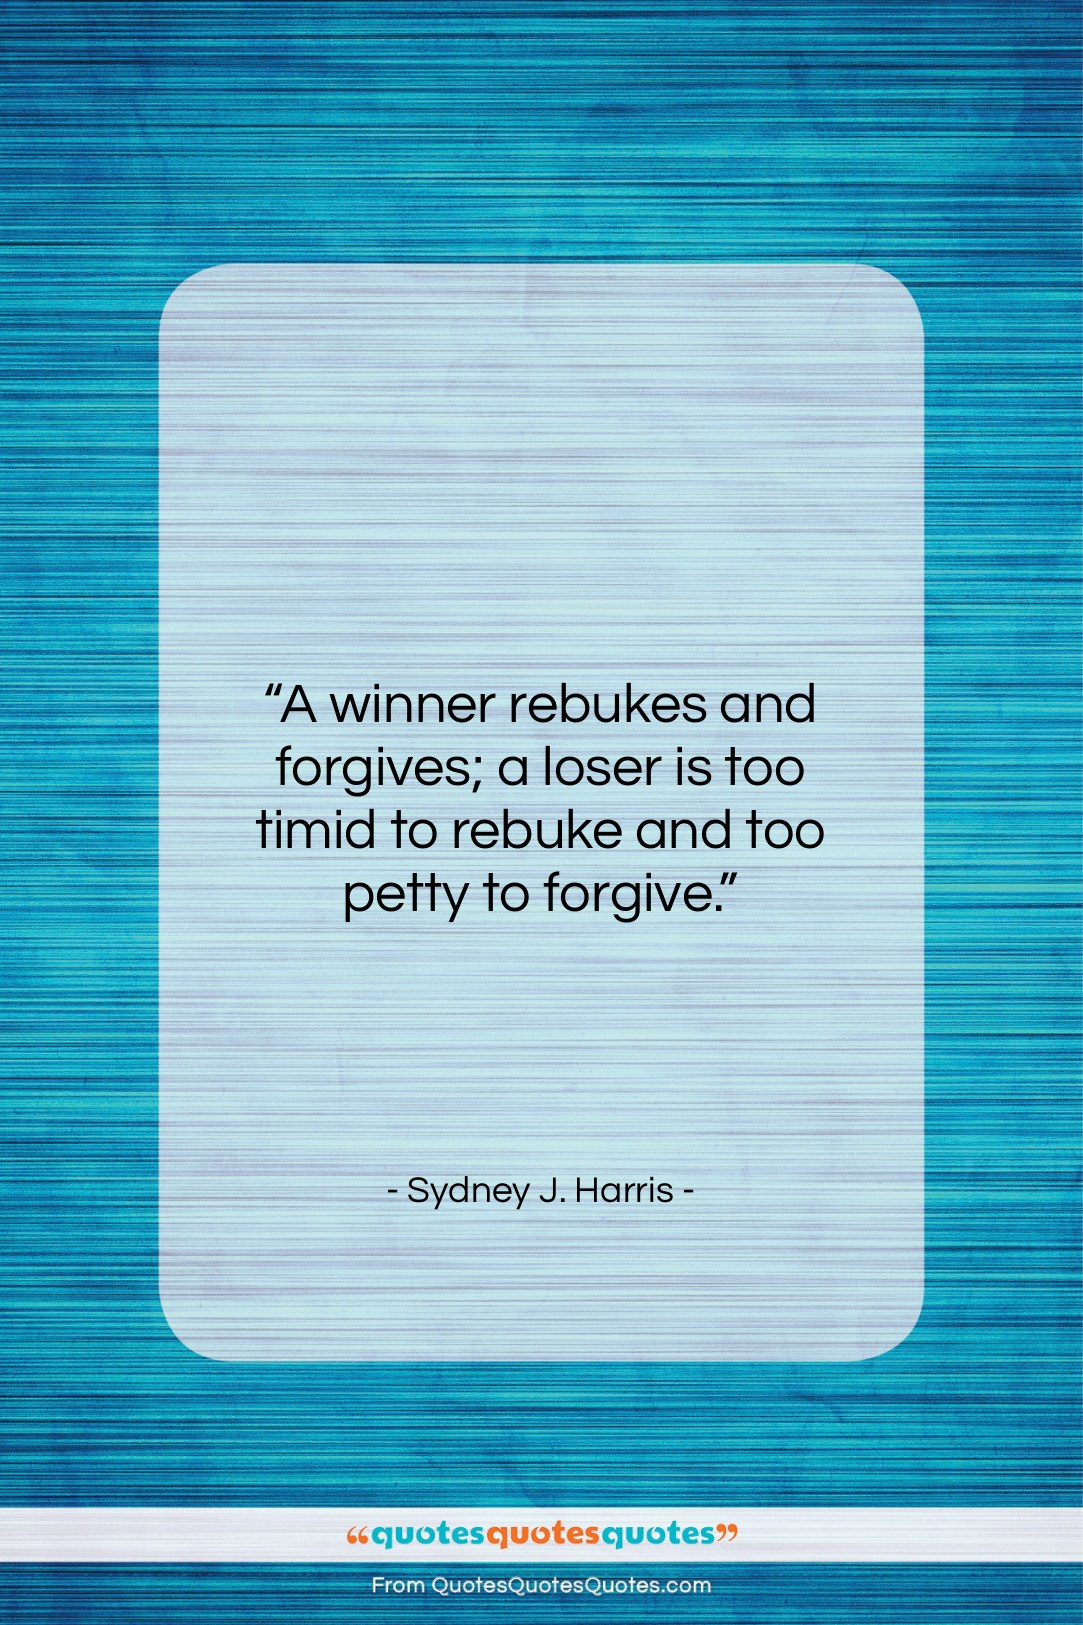 """Sydney J. Harris quote: """"A winner rebukes and forgives; a loser…""""- at QuotesQuotesQuotes.com"""